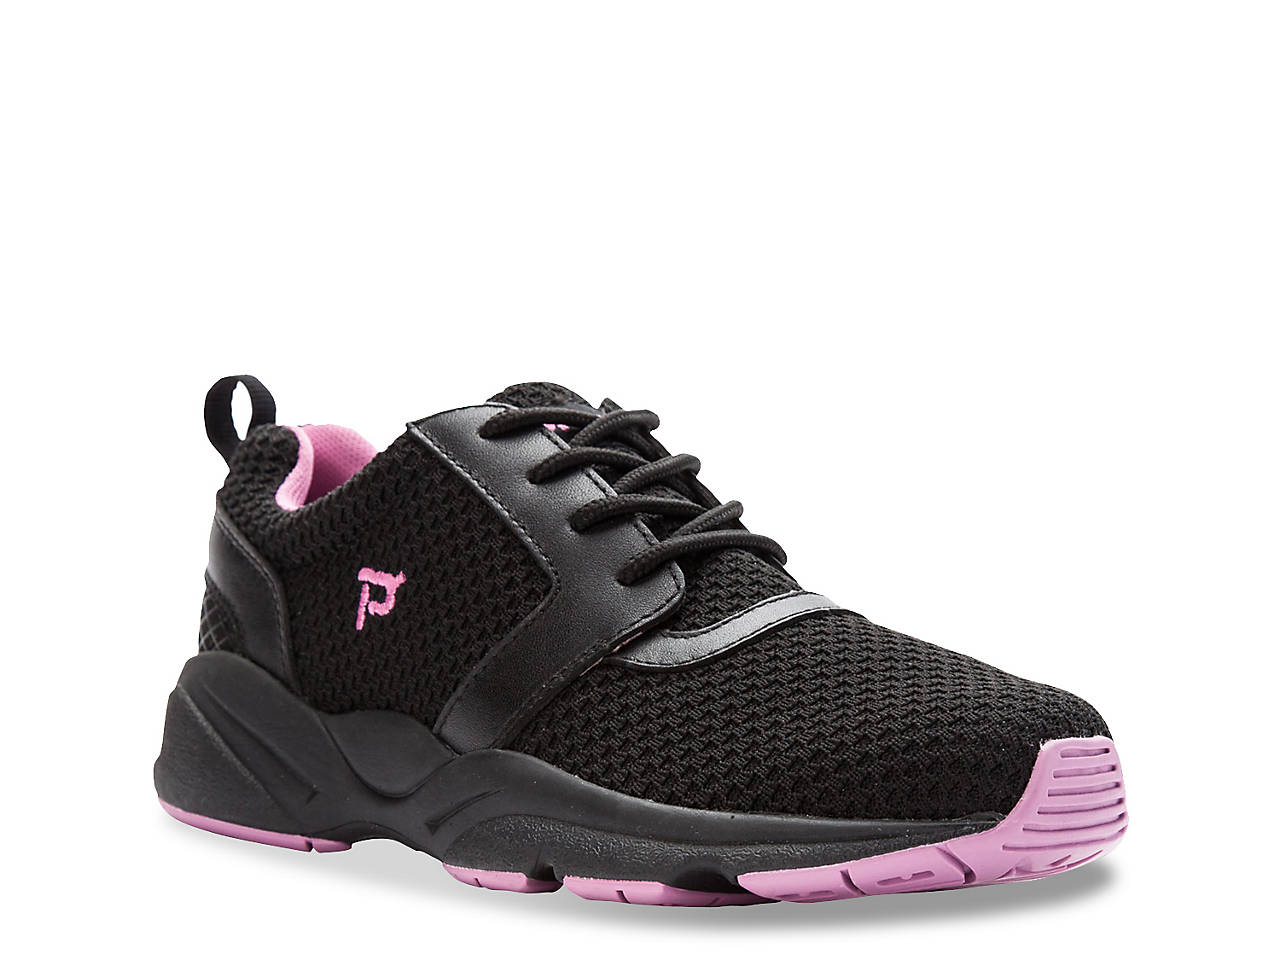 Stability X Walking Shoe   Women's by Propet